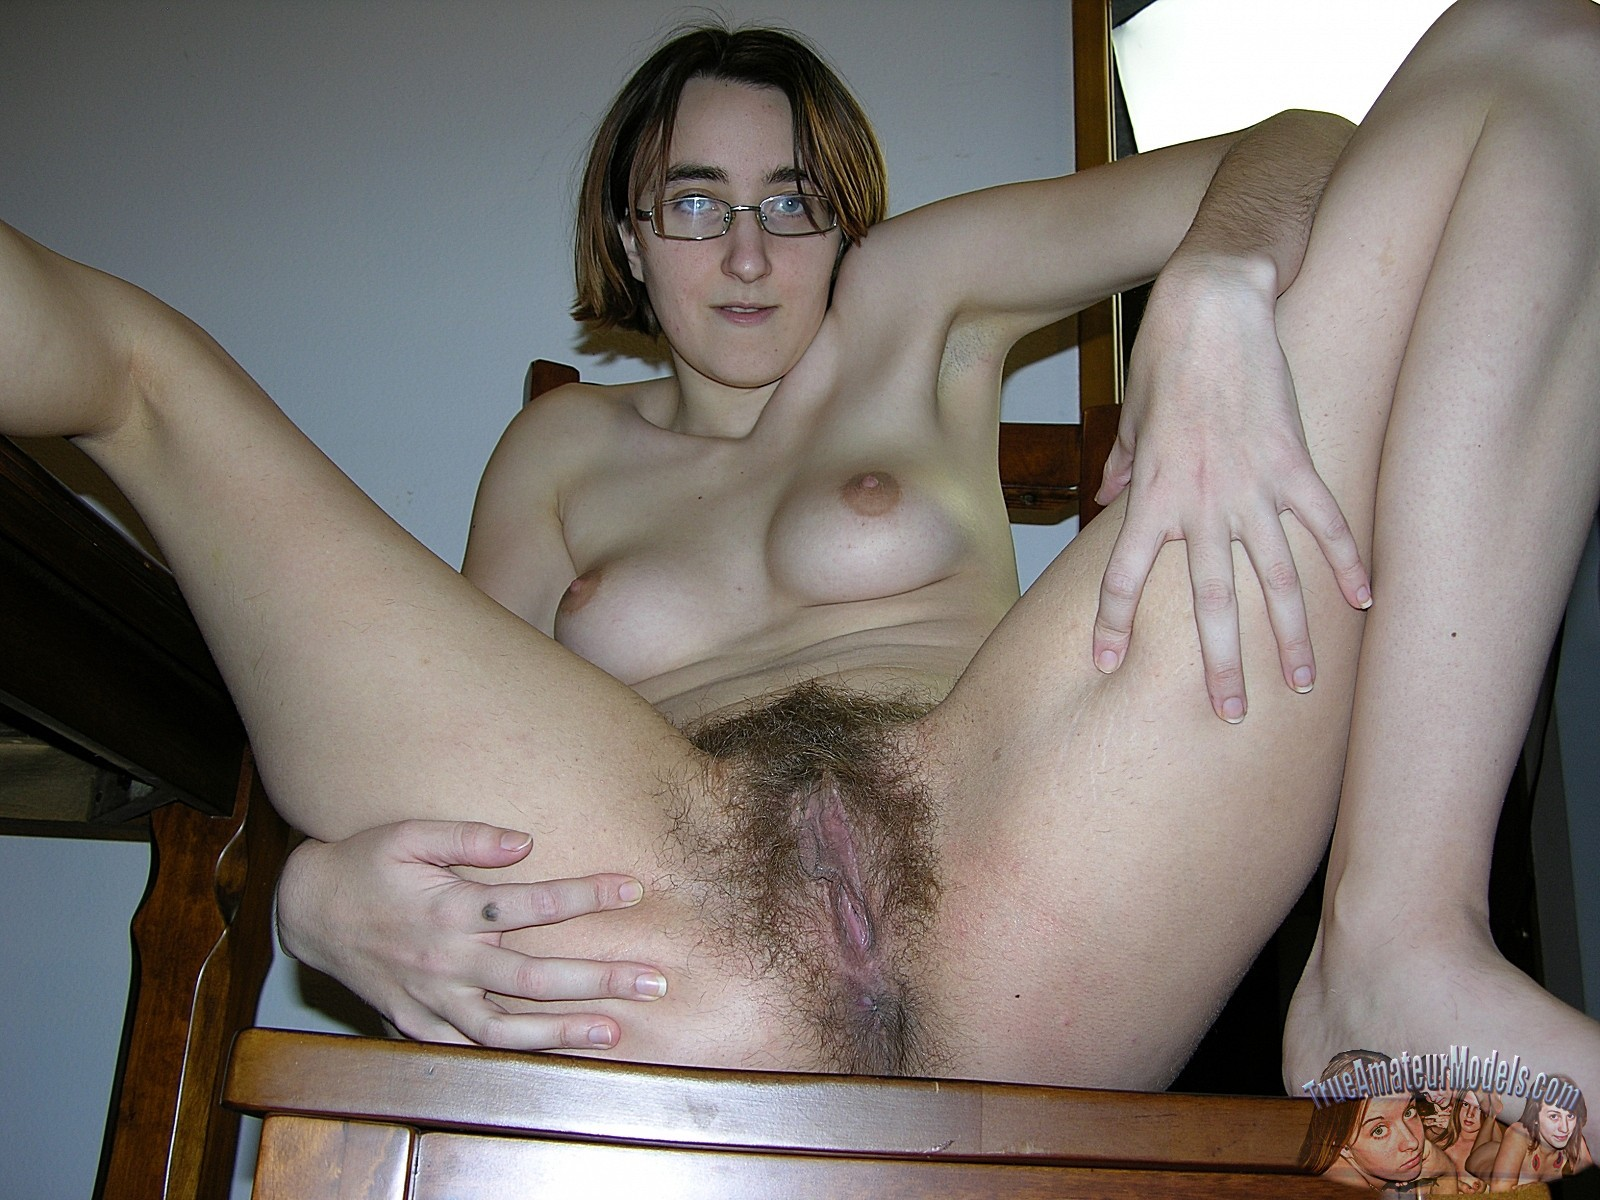 hairy-naked-ugly-women-naked-in-public-pics